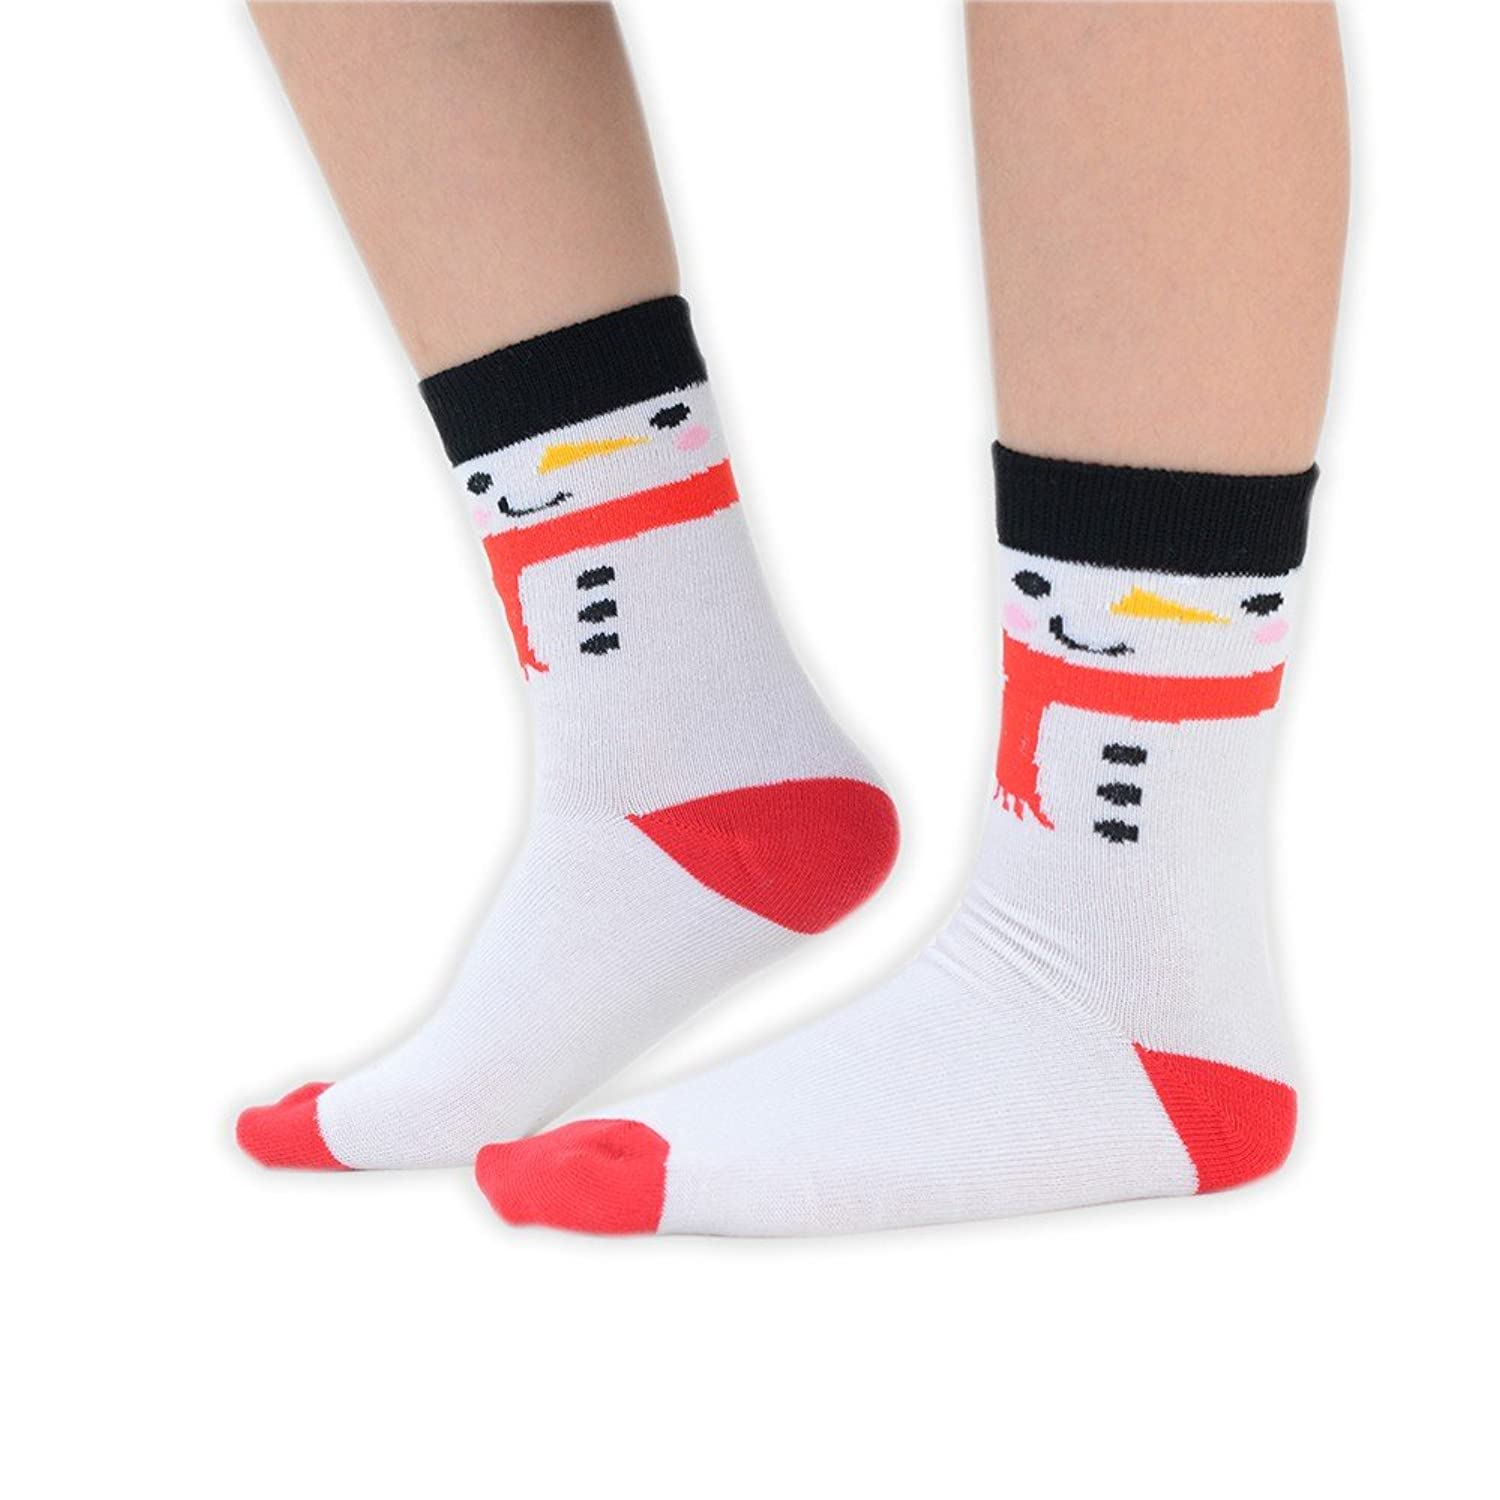 1 Pair of Kids Christmas Ankle Socks with Santa Rudolph Snow Different Sizes Available